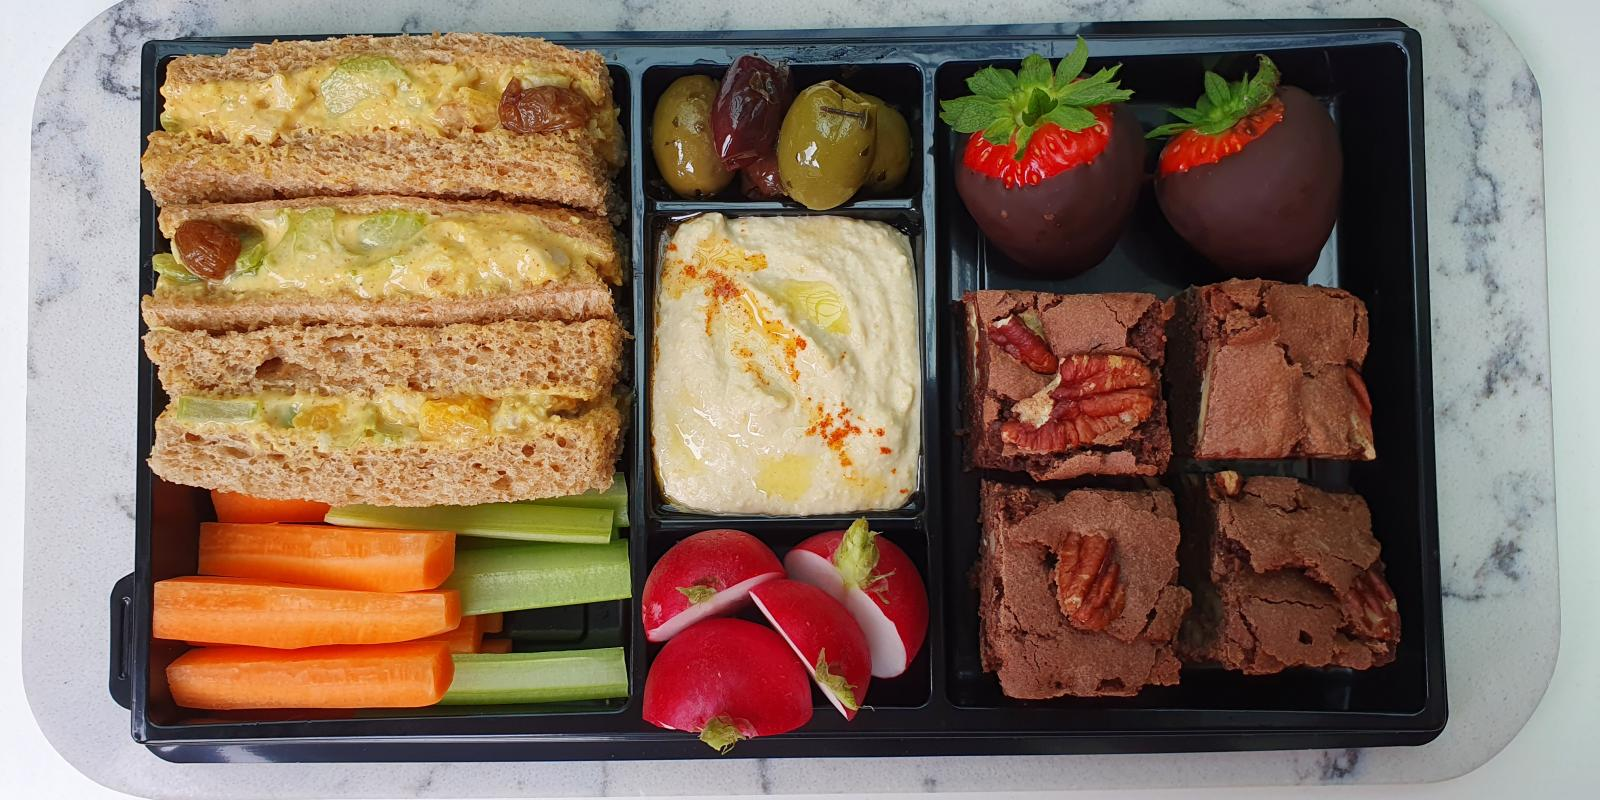 Picnic Boxes Autumn 2020 - Vegan picnic box: Celery, sultanas, apple & walnut sandwich, Hummus & crudités, Olives, Chocolate dipped strawberries, Pecan brownies